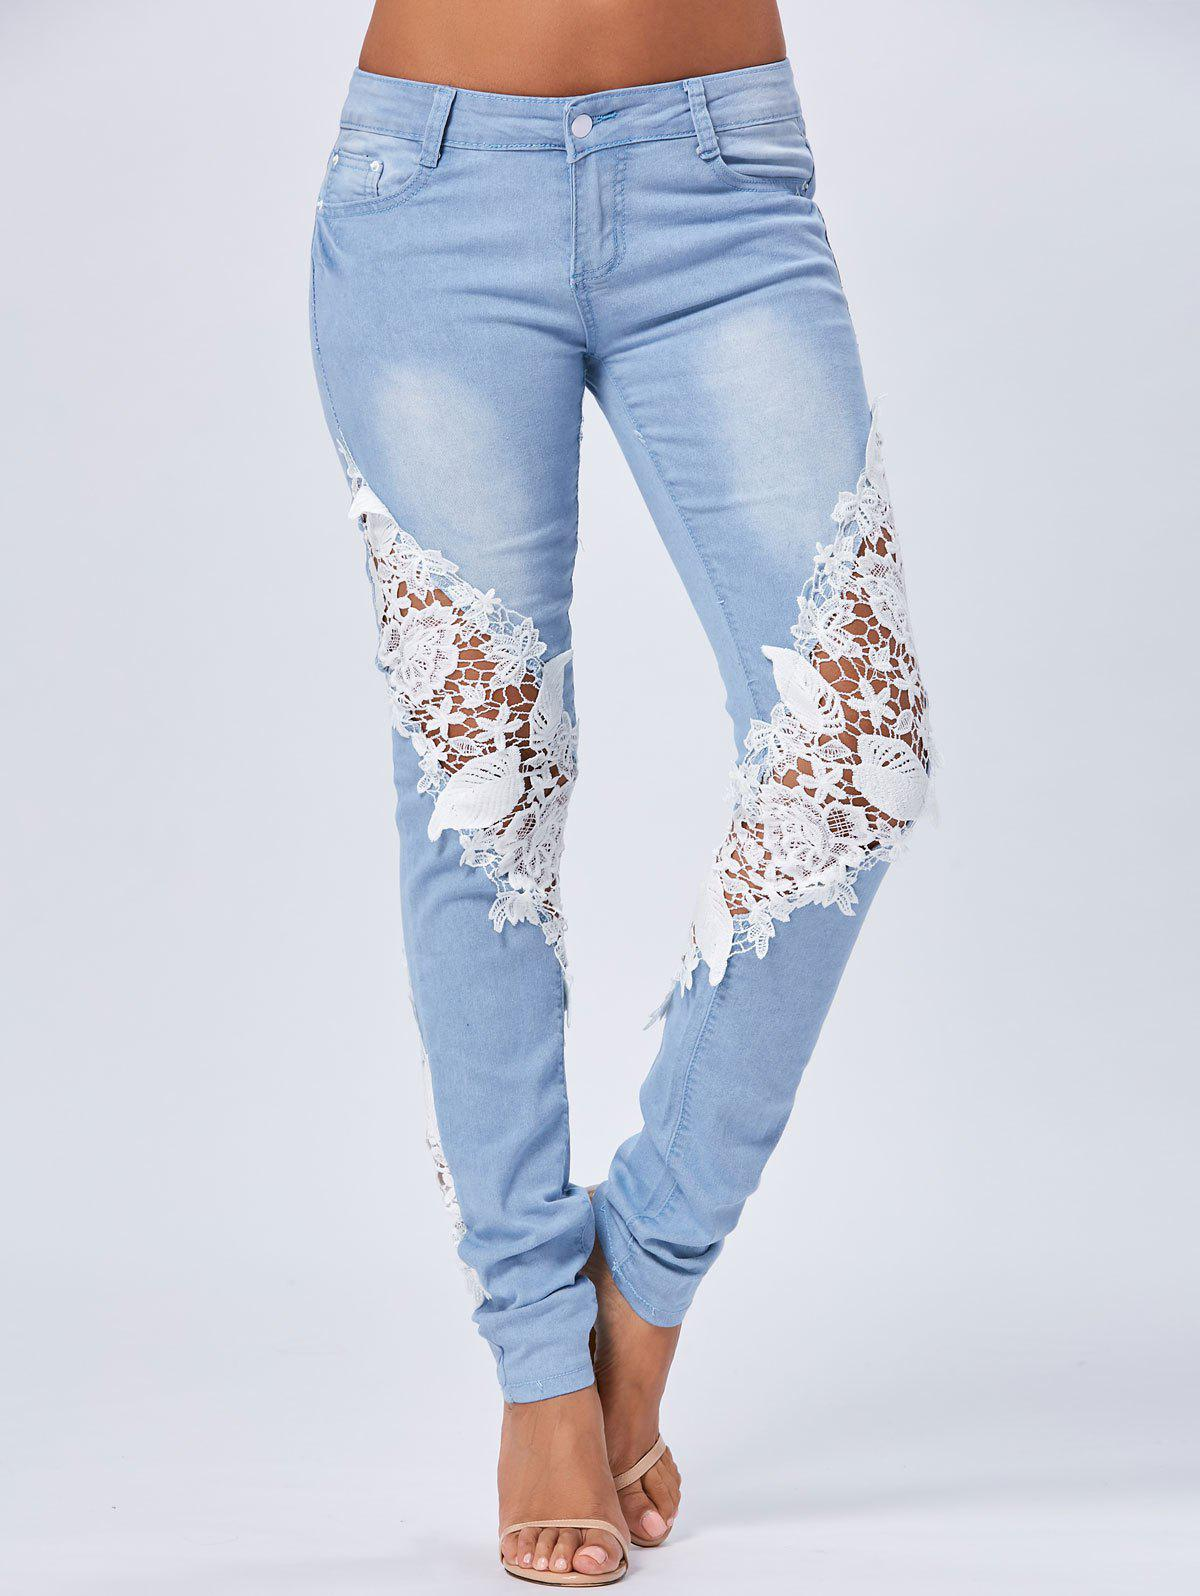 Lace Panel Staright Light Wash Jeans - BLUE S